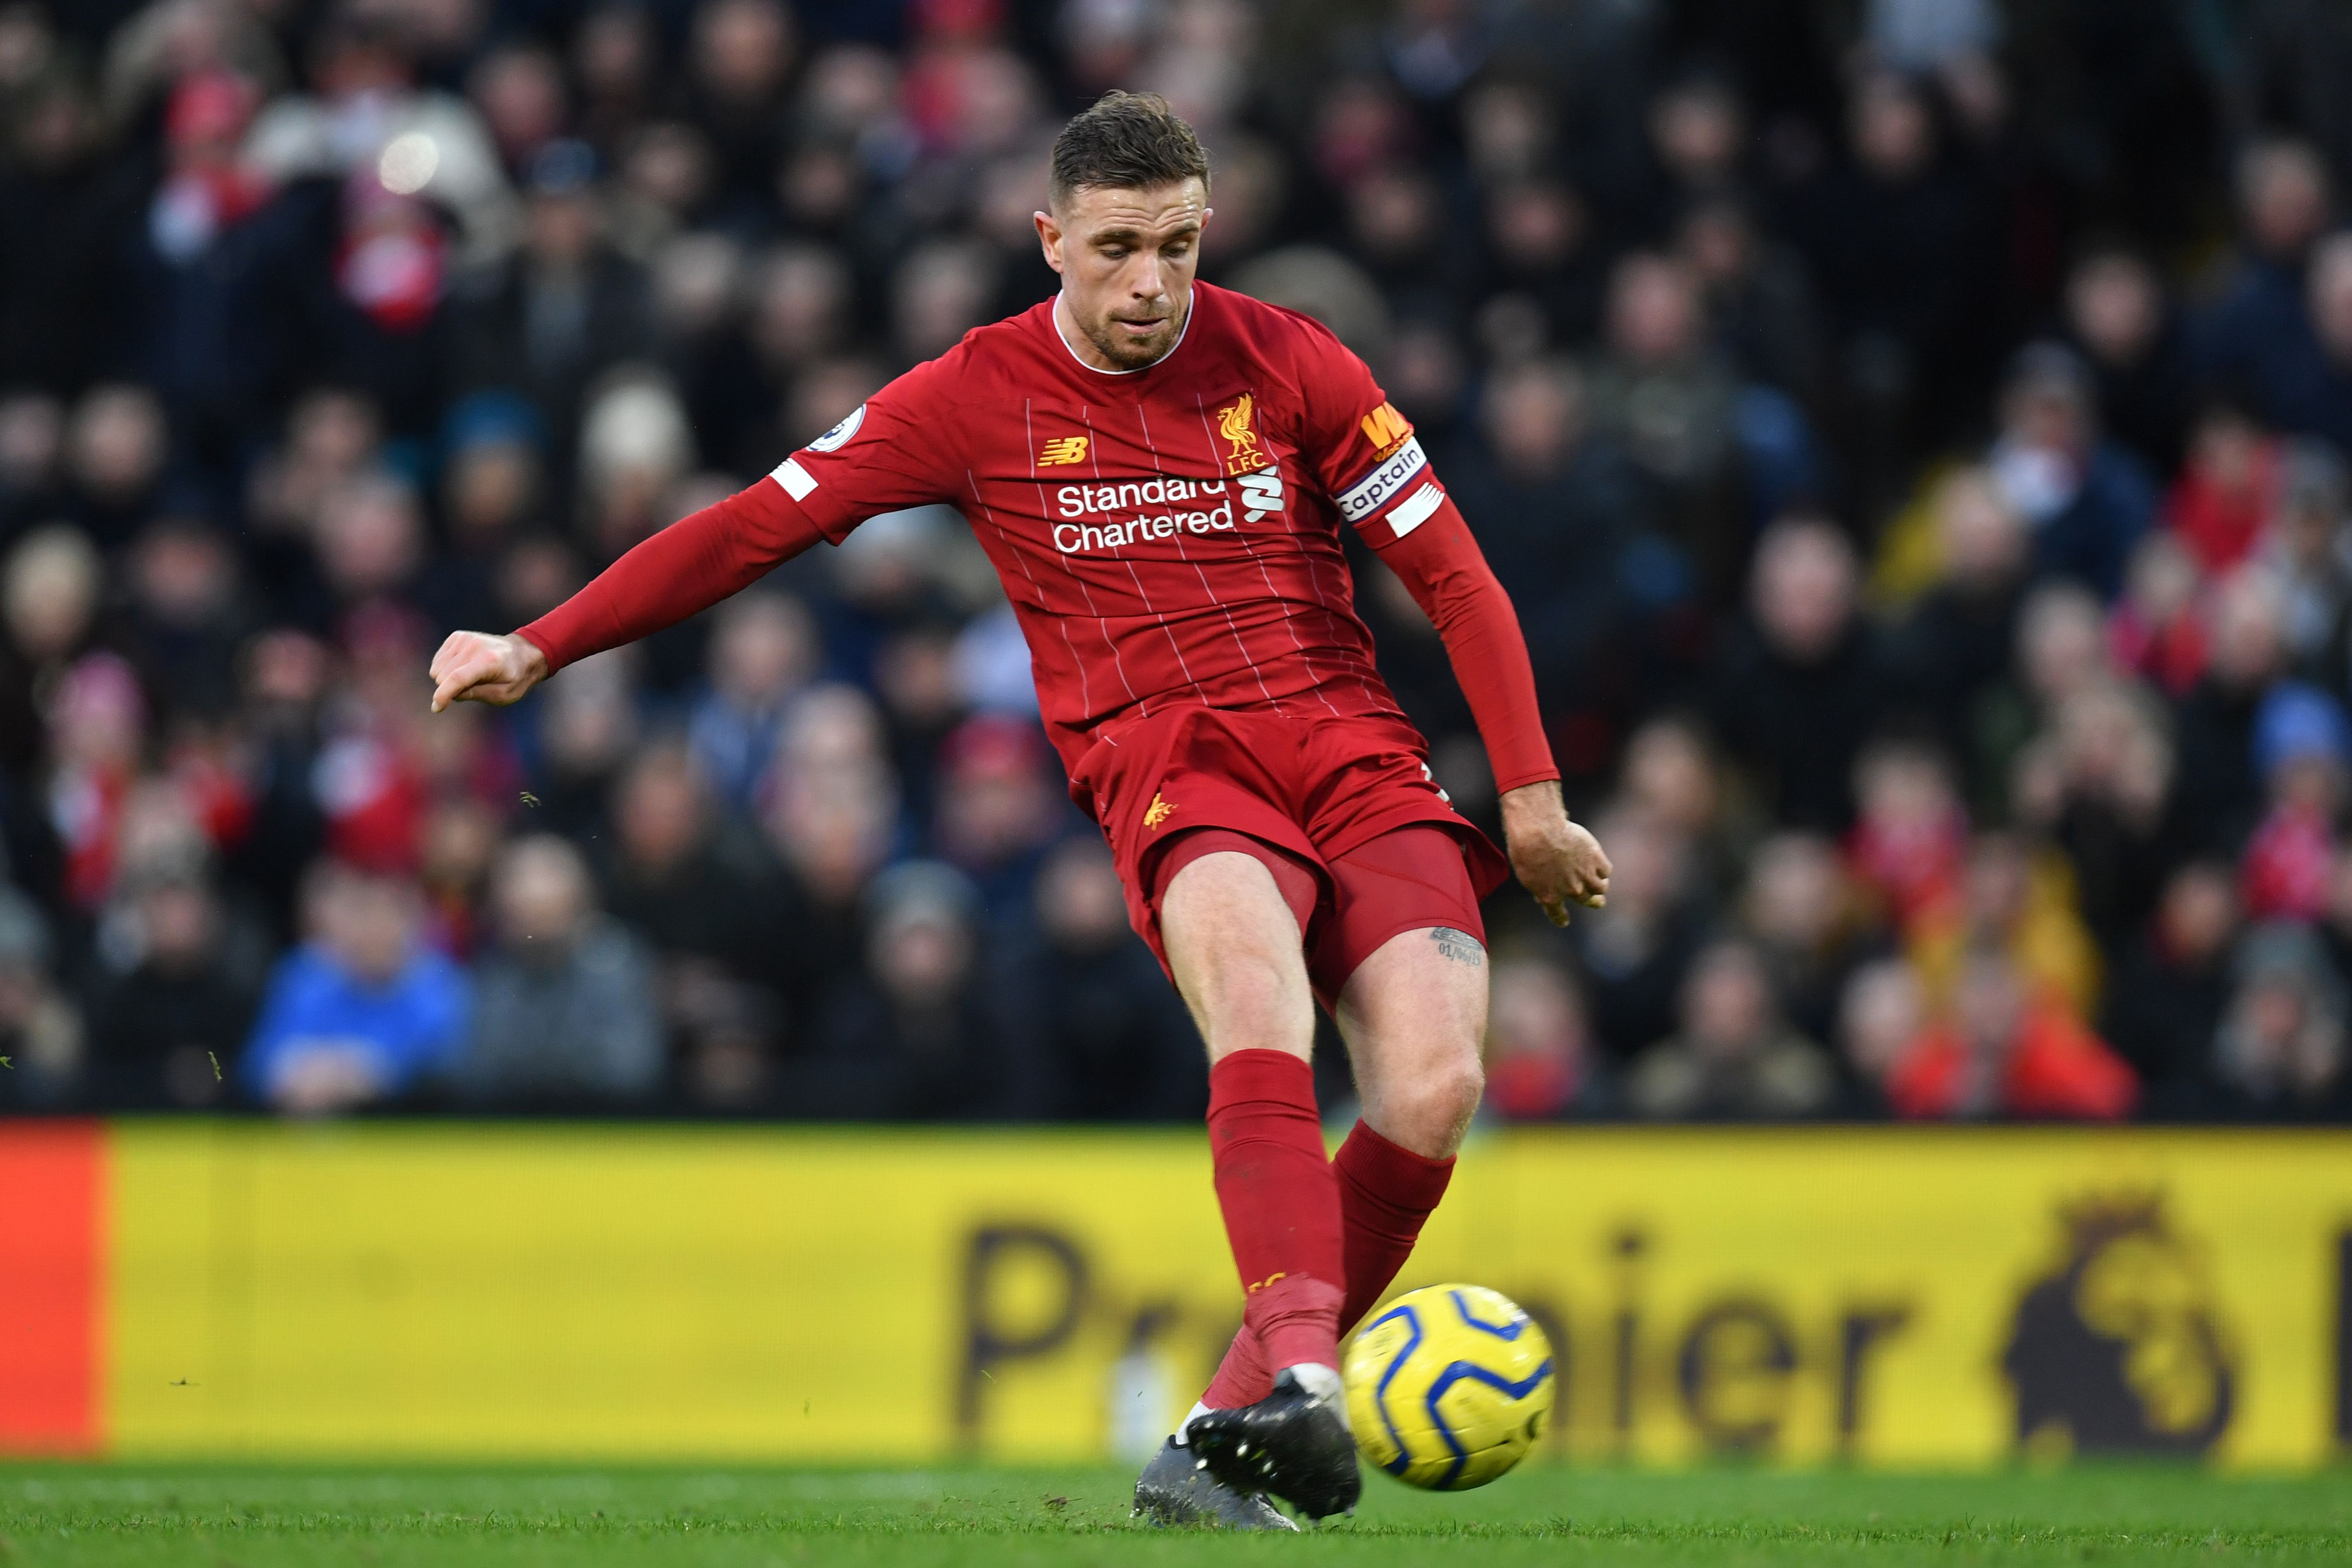 Henderson's return to training is a boost for Liverpool (Photo by PAUL ELLIS/AFP via Getty Images)